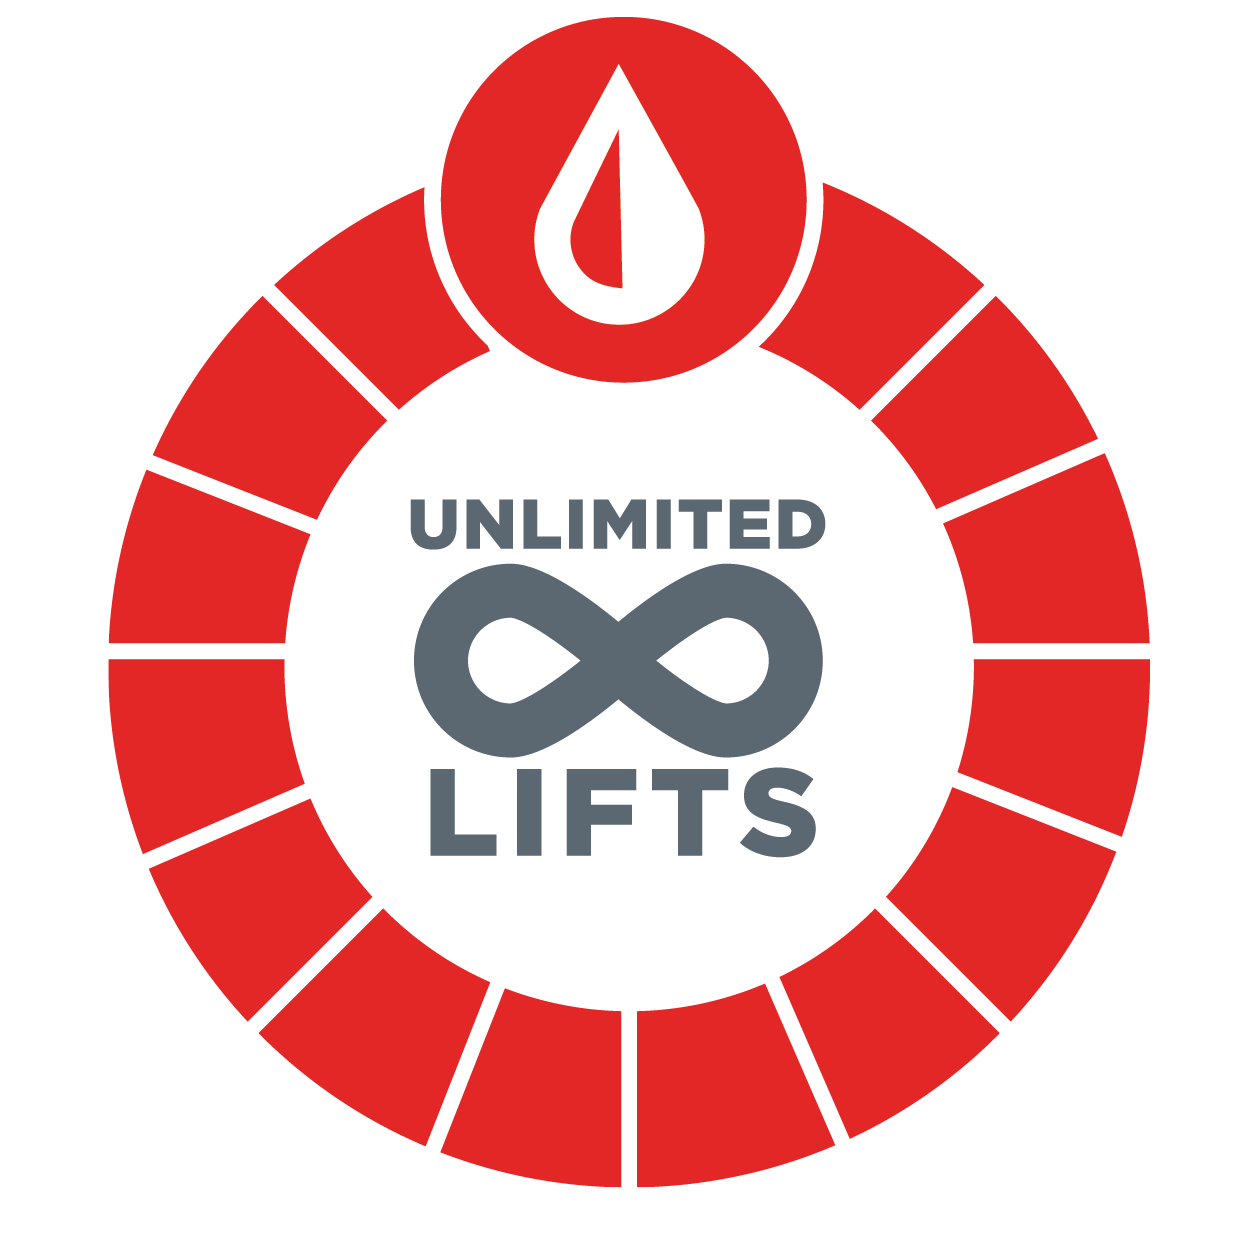 Hoist System ideal for 6max loaded lifts